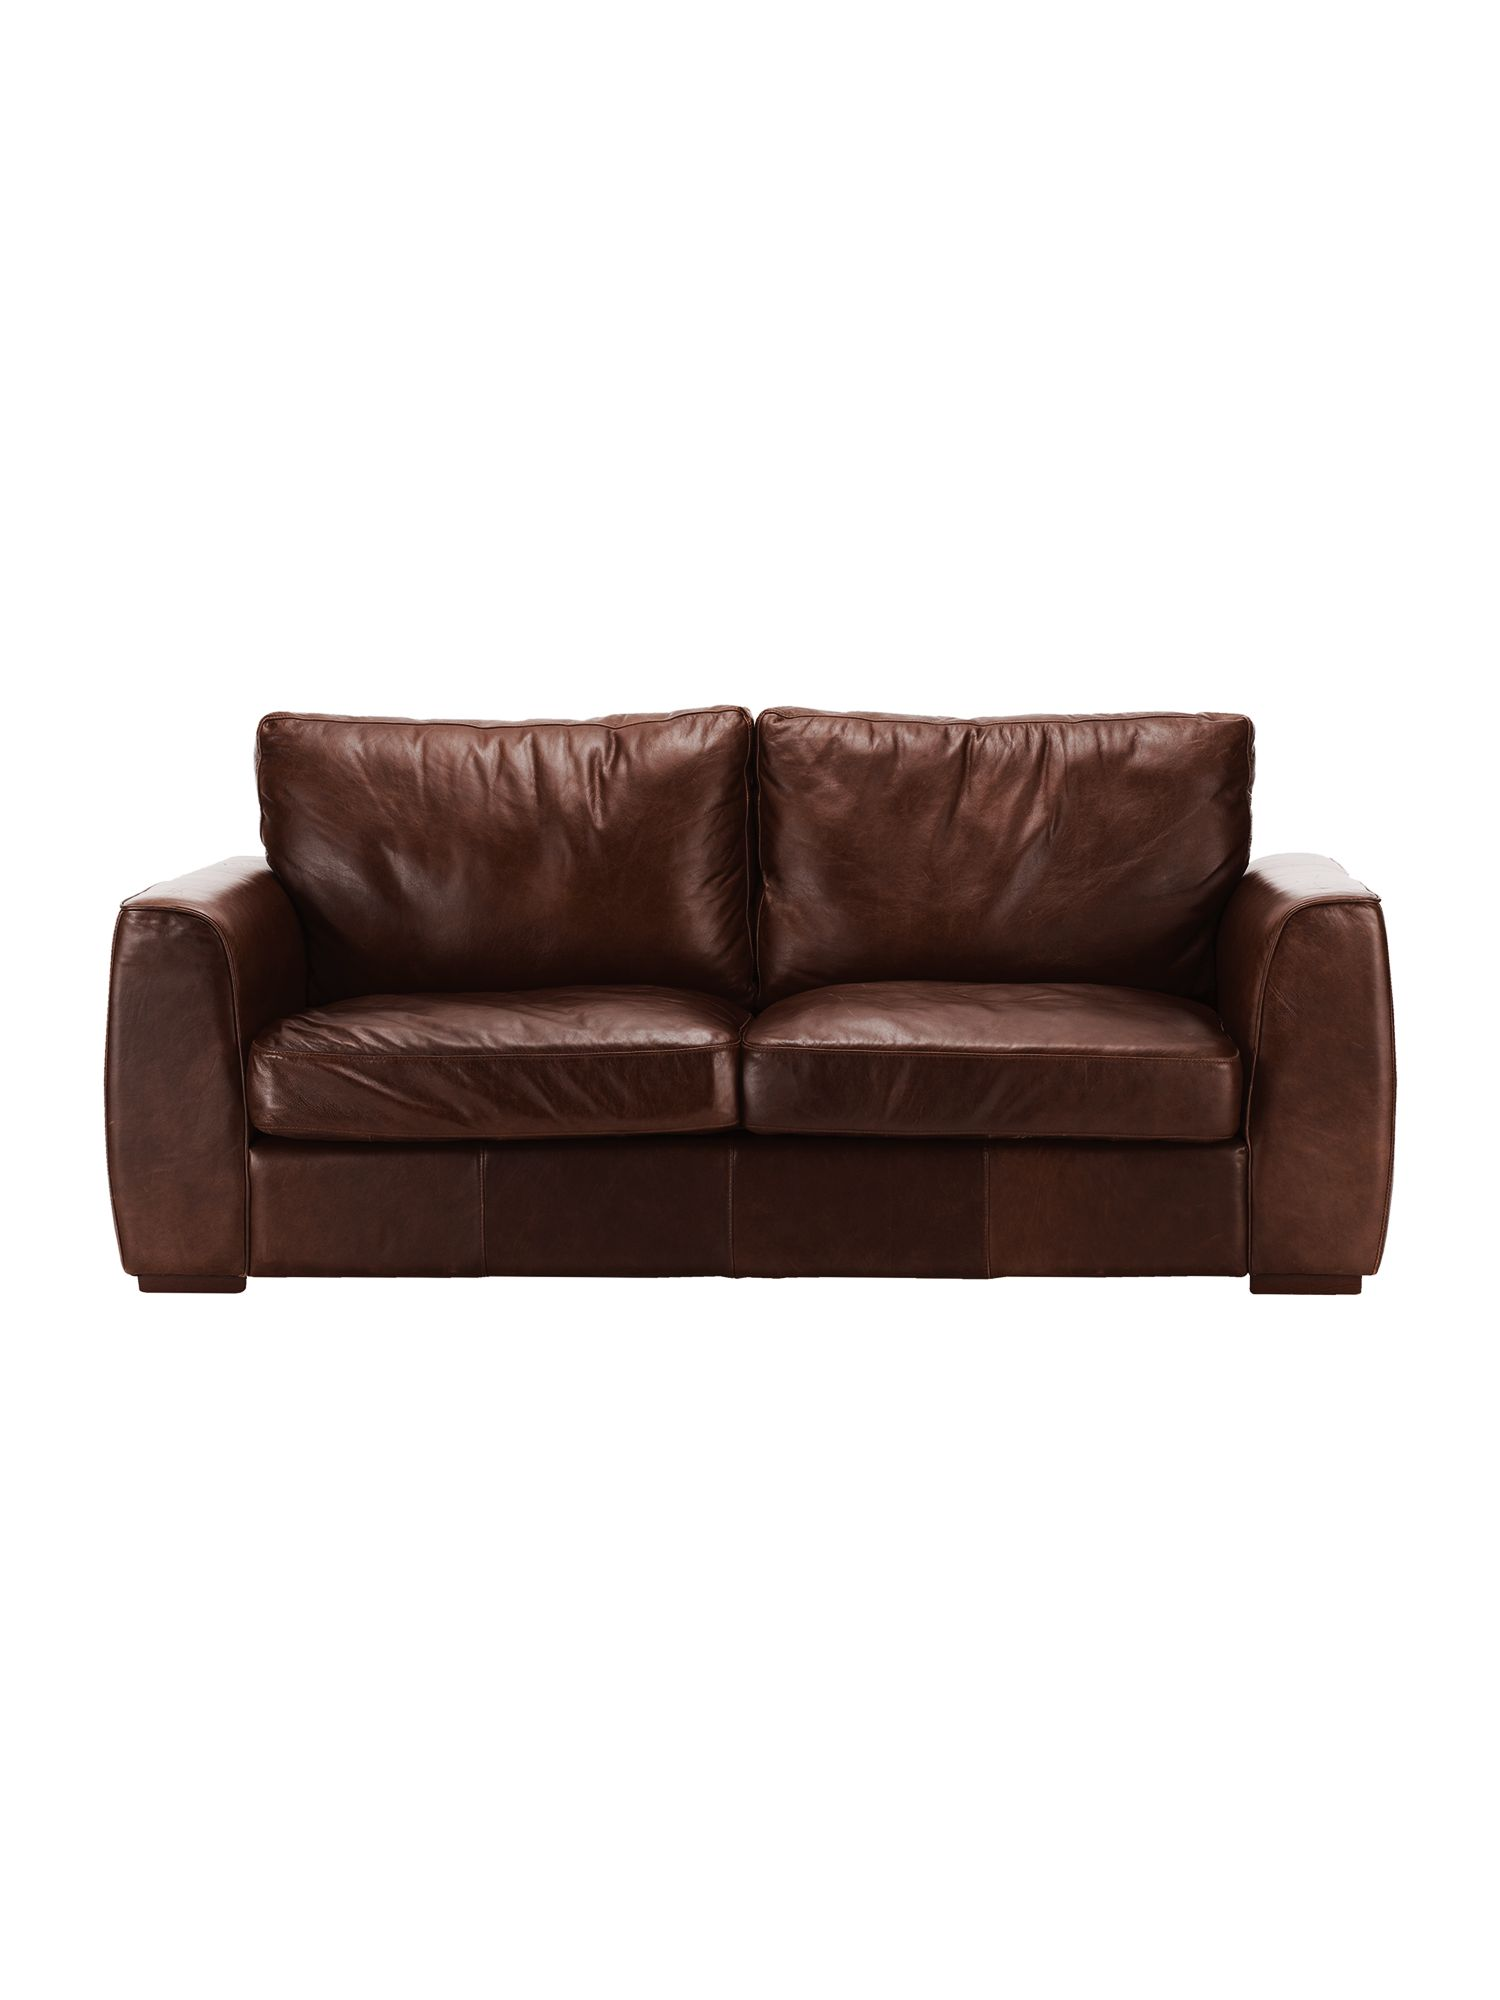 Colorado 3 seater large sofa Mocca